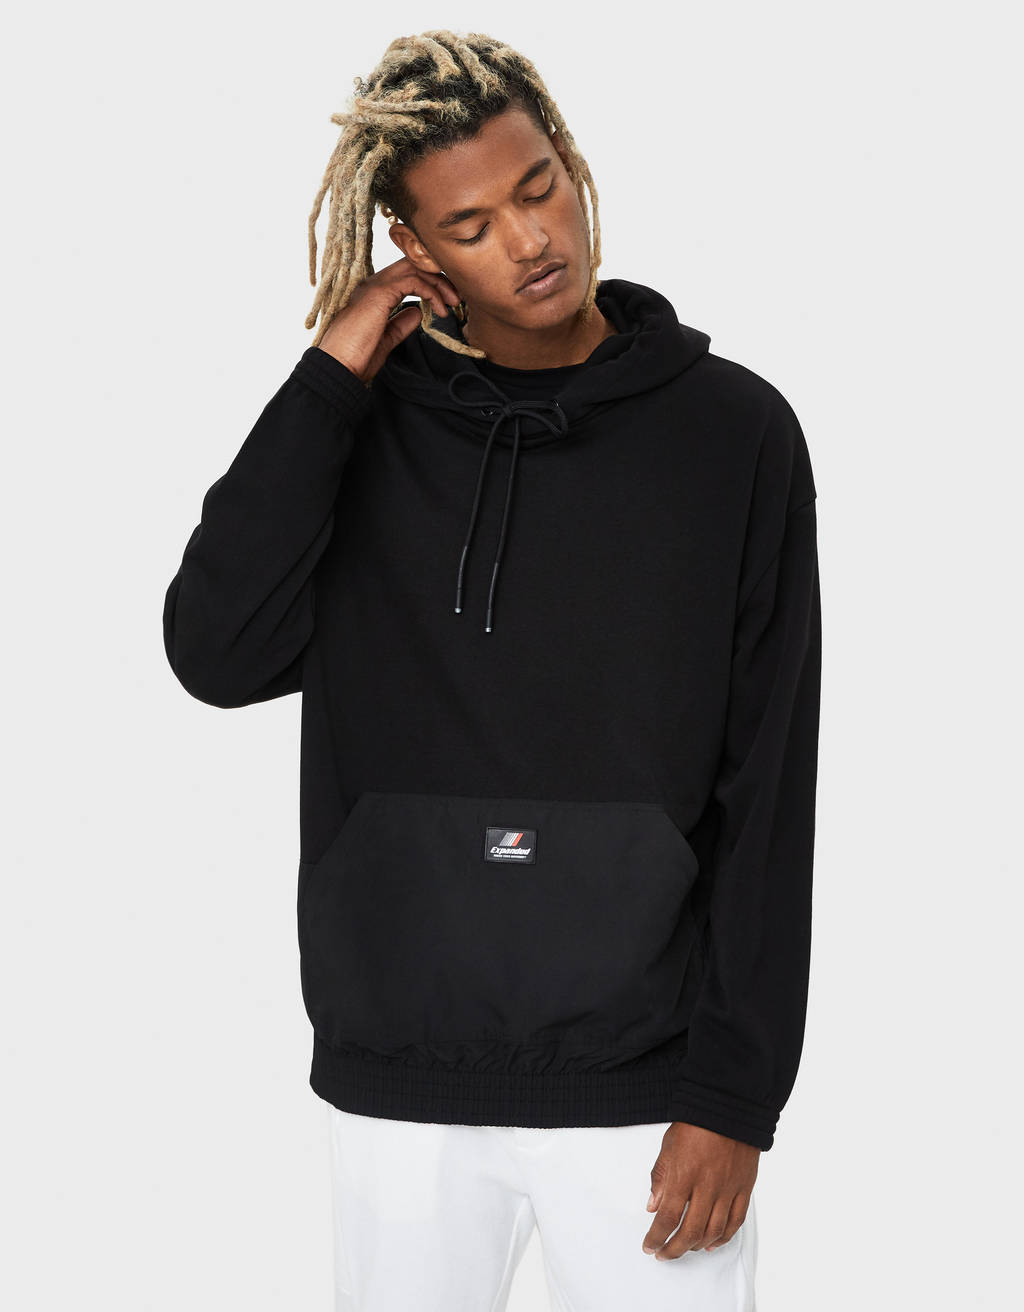 Sweatshirt with side zip